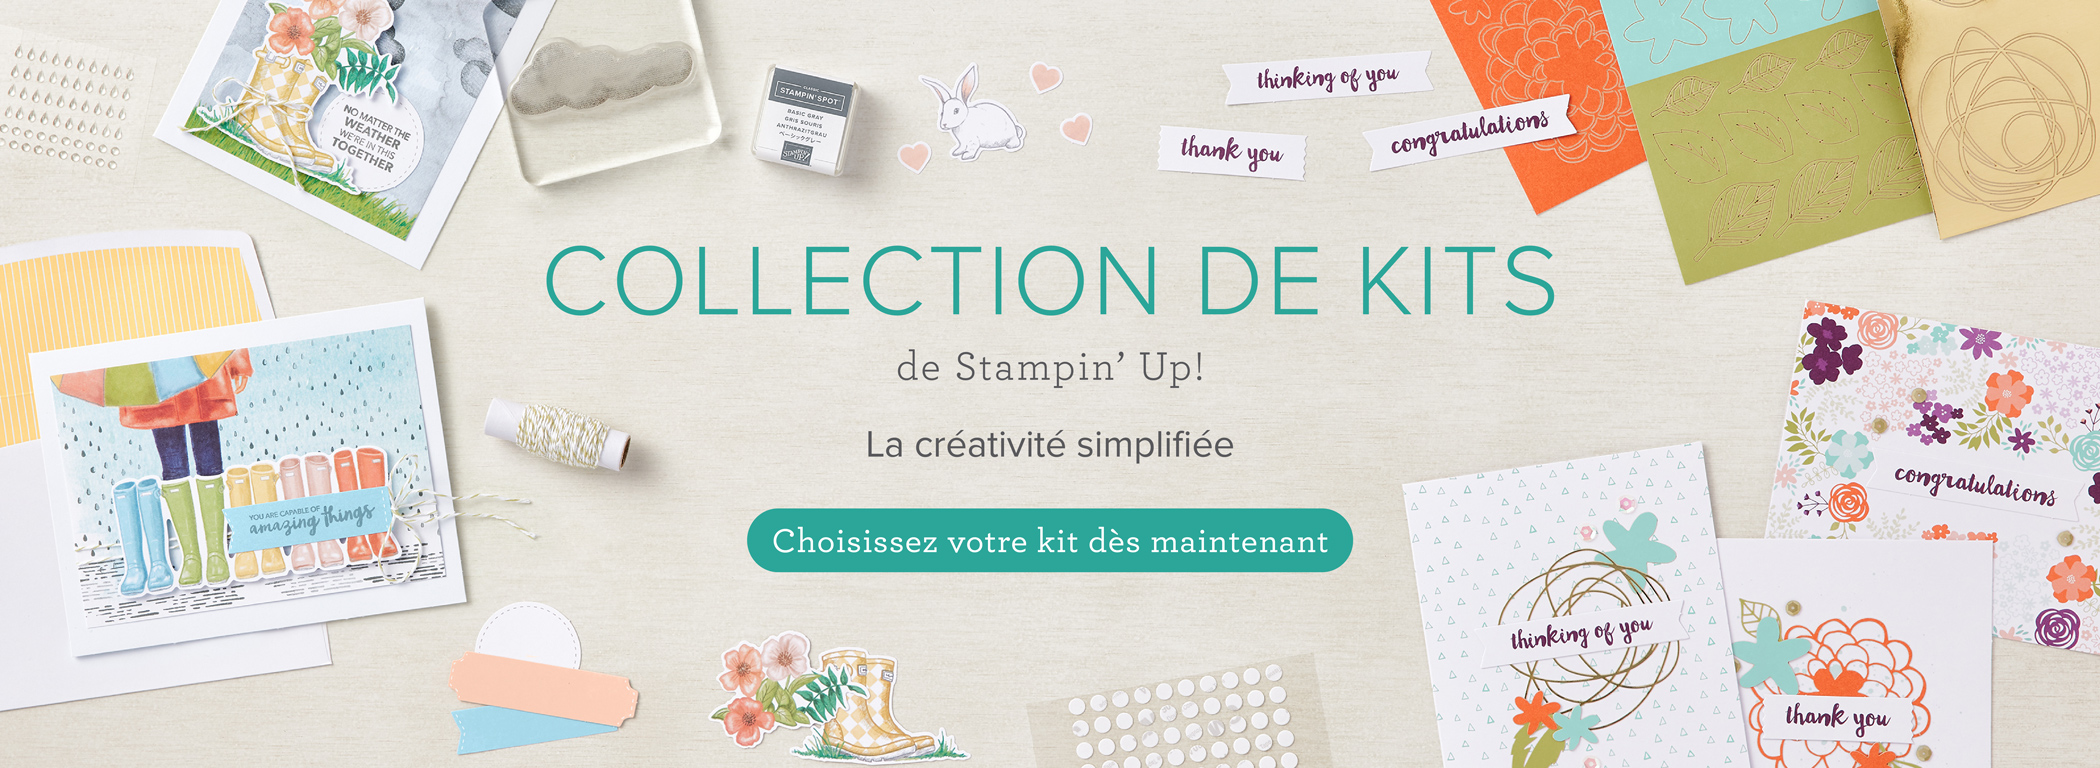 2021 06 01 Stampin'Up! Collection de Kits 1